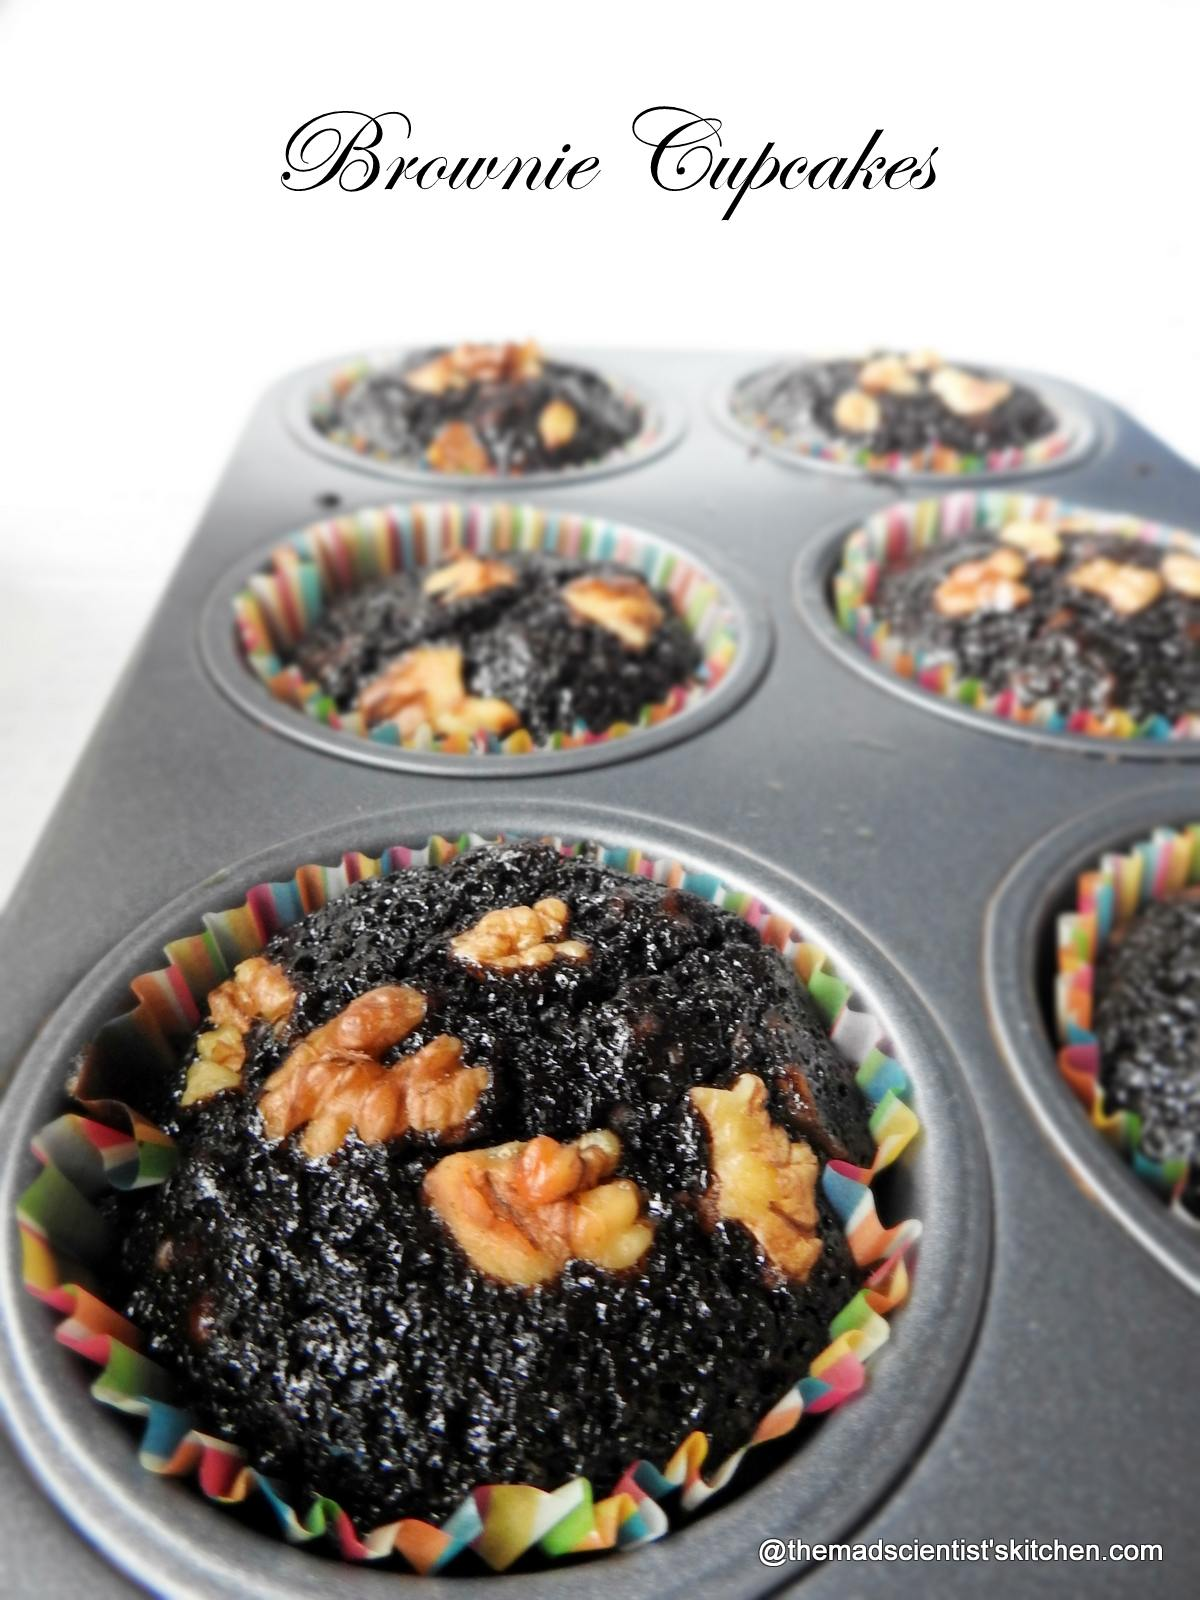 Cupcakes that are brownies with nuts